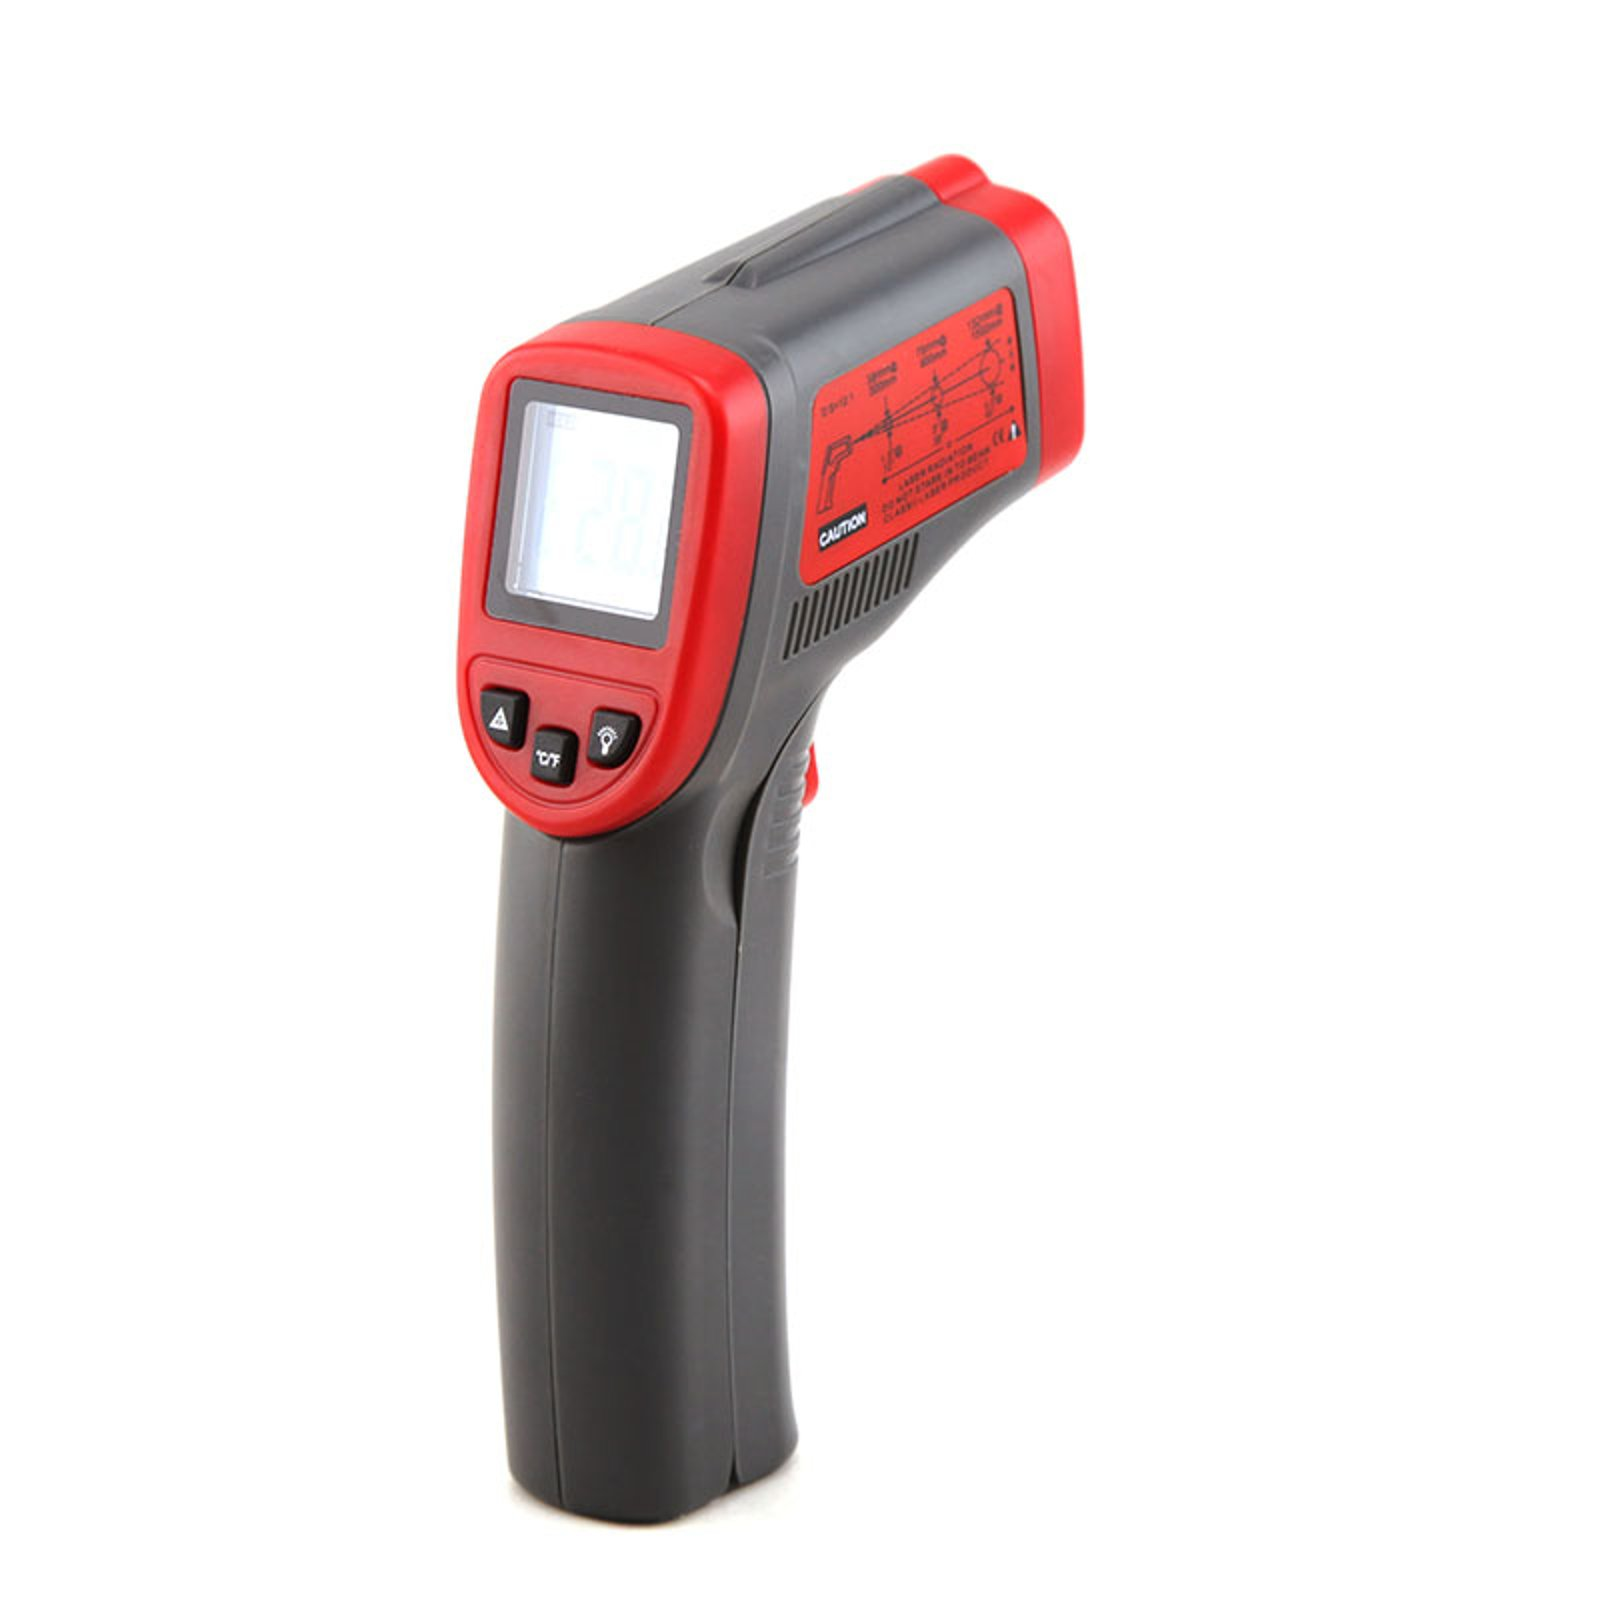 Nicety(R) IR Infrared Thermometer Gun w. Laser Guide ST-380 Non Contact Temperature Measurement Gun w. Laser Guide by Nicety(R) (Image #1)